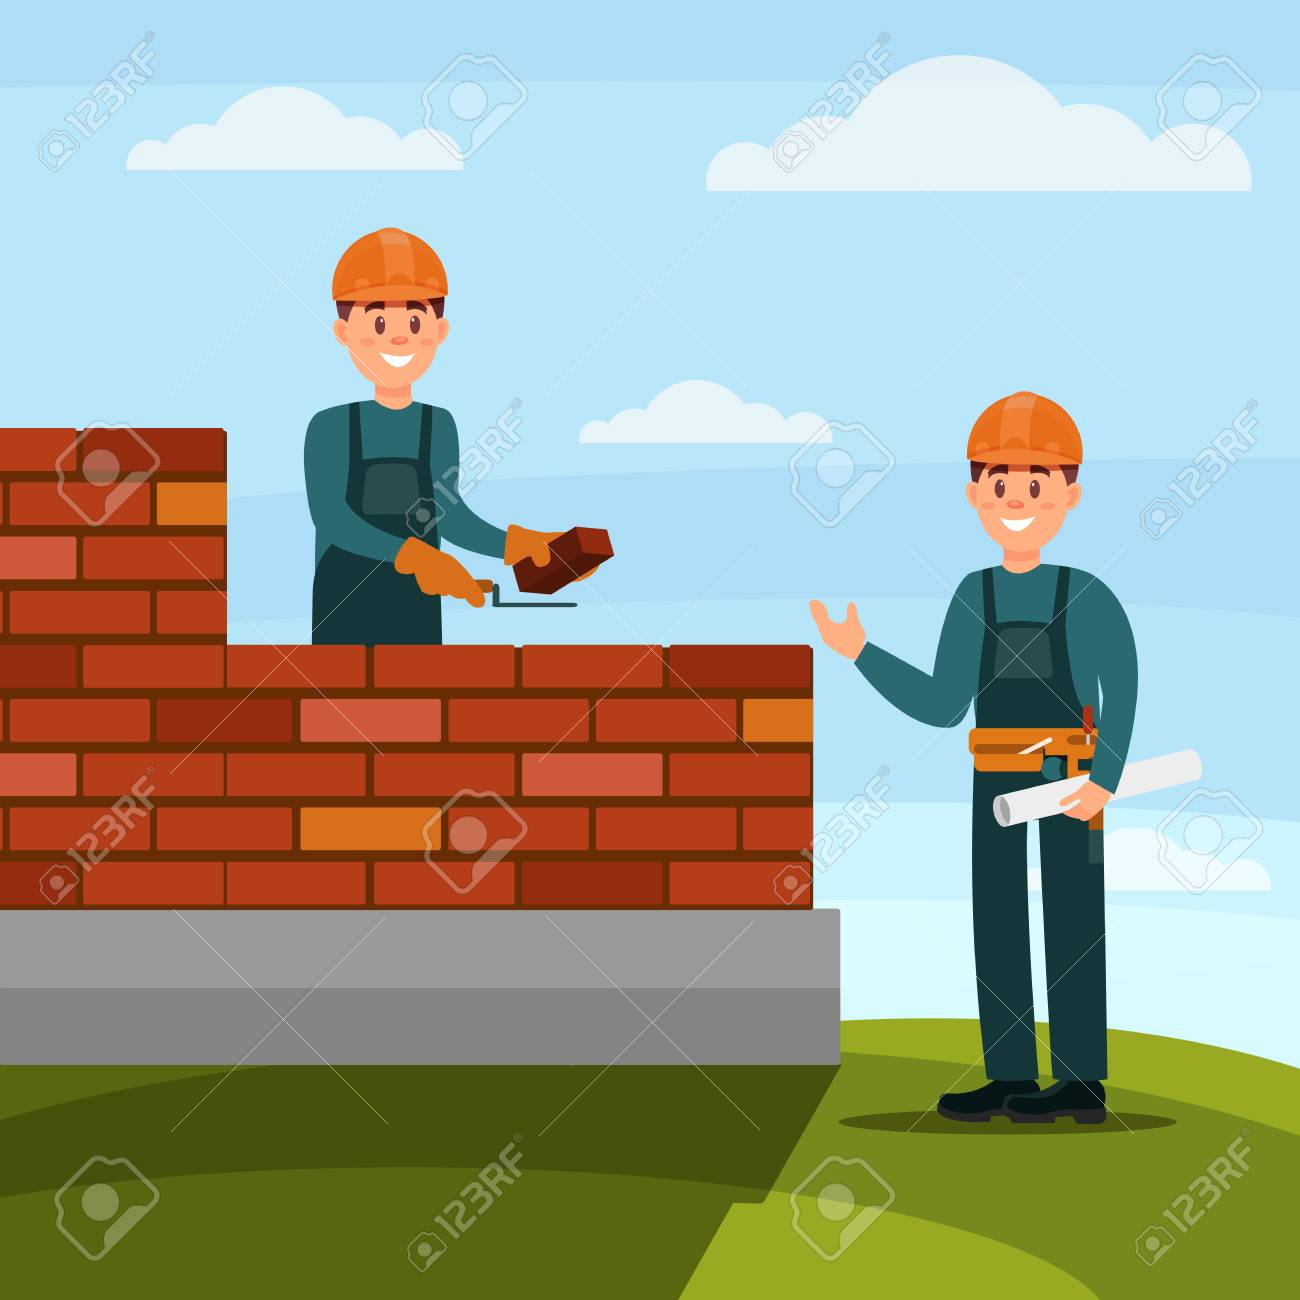 Construction worker bricklayer making a brickwork with trowel and cement mortar, foreman supervising his work on nature background flat vector illustration, web design - 97590137